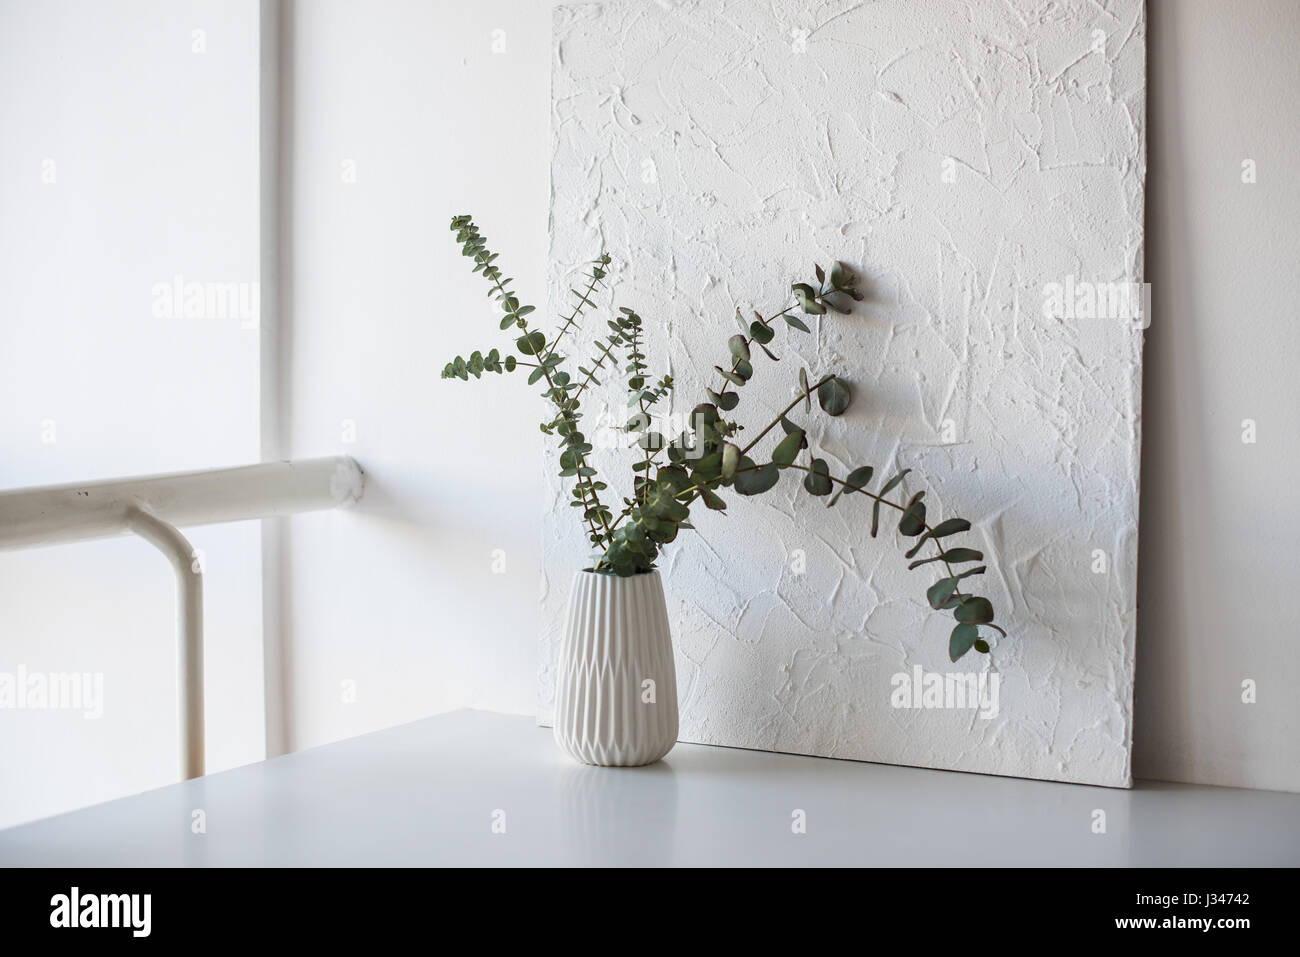 Minimalist Home Interior Decor Branches In Vase On Table In White